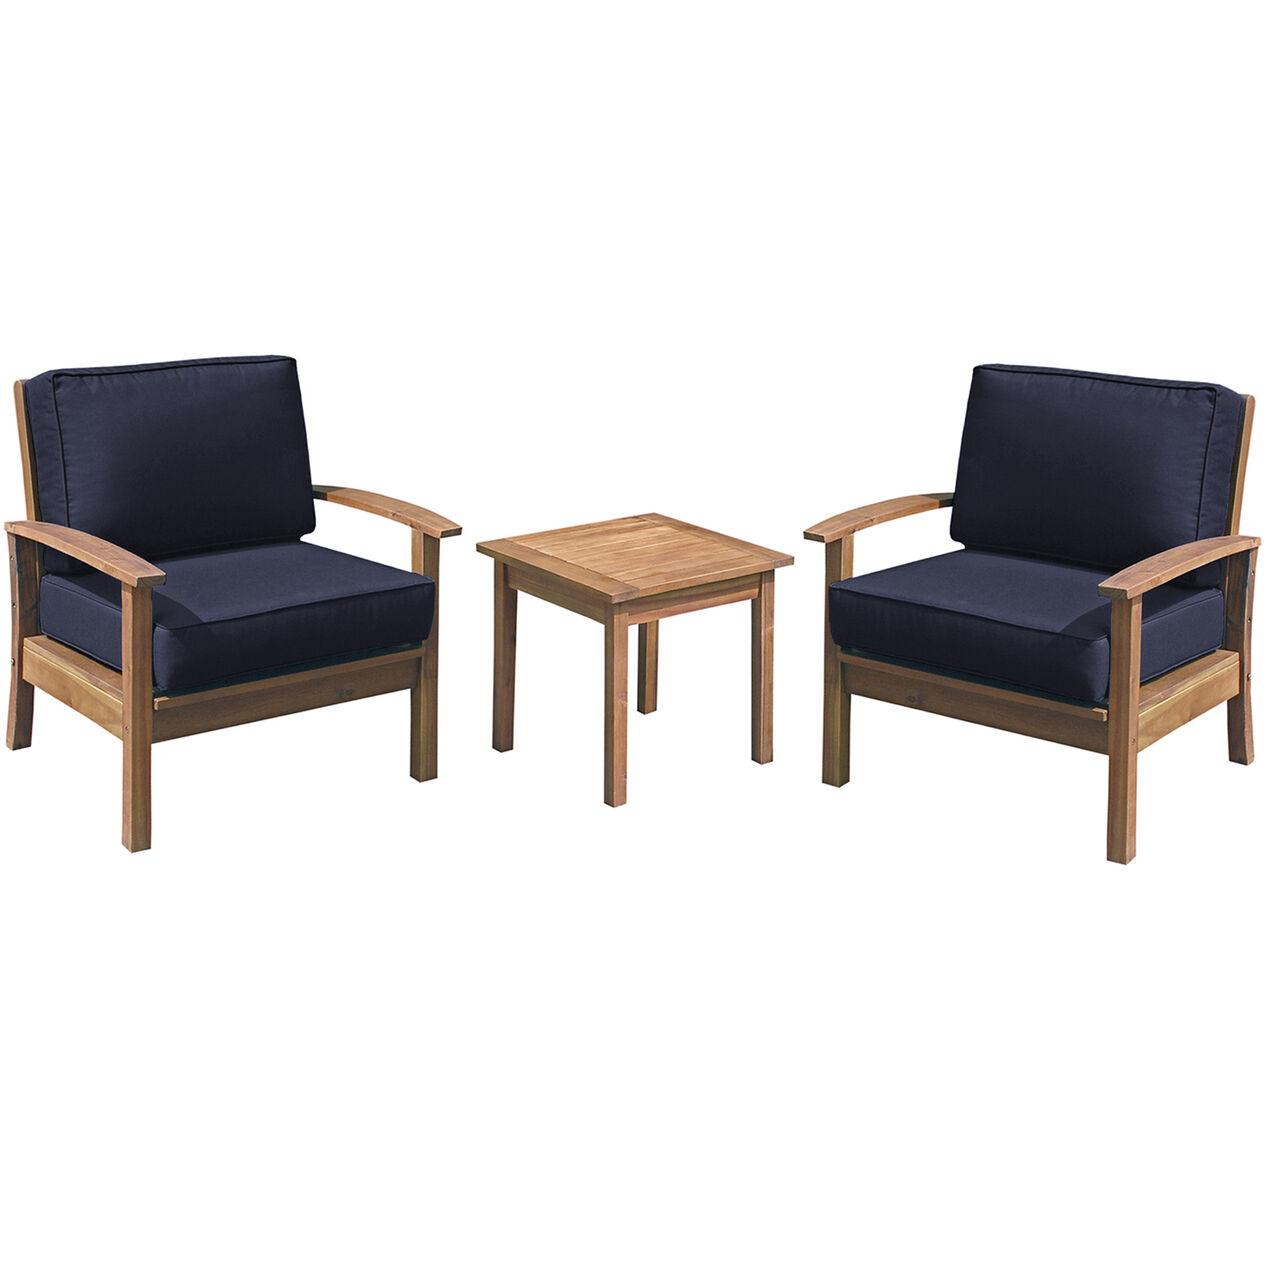 Outdoor wood chair furniture - Kingston 3 Piece Wood Chair And Table Set